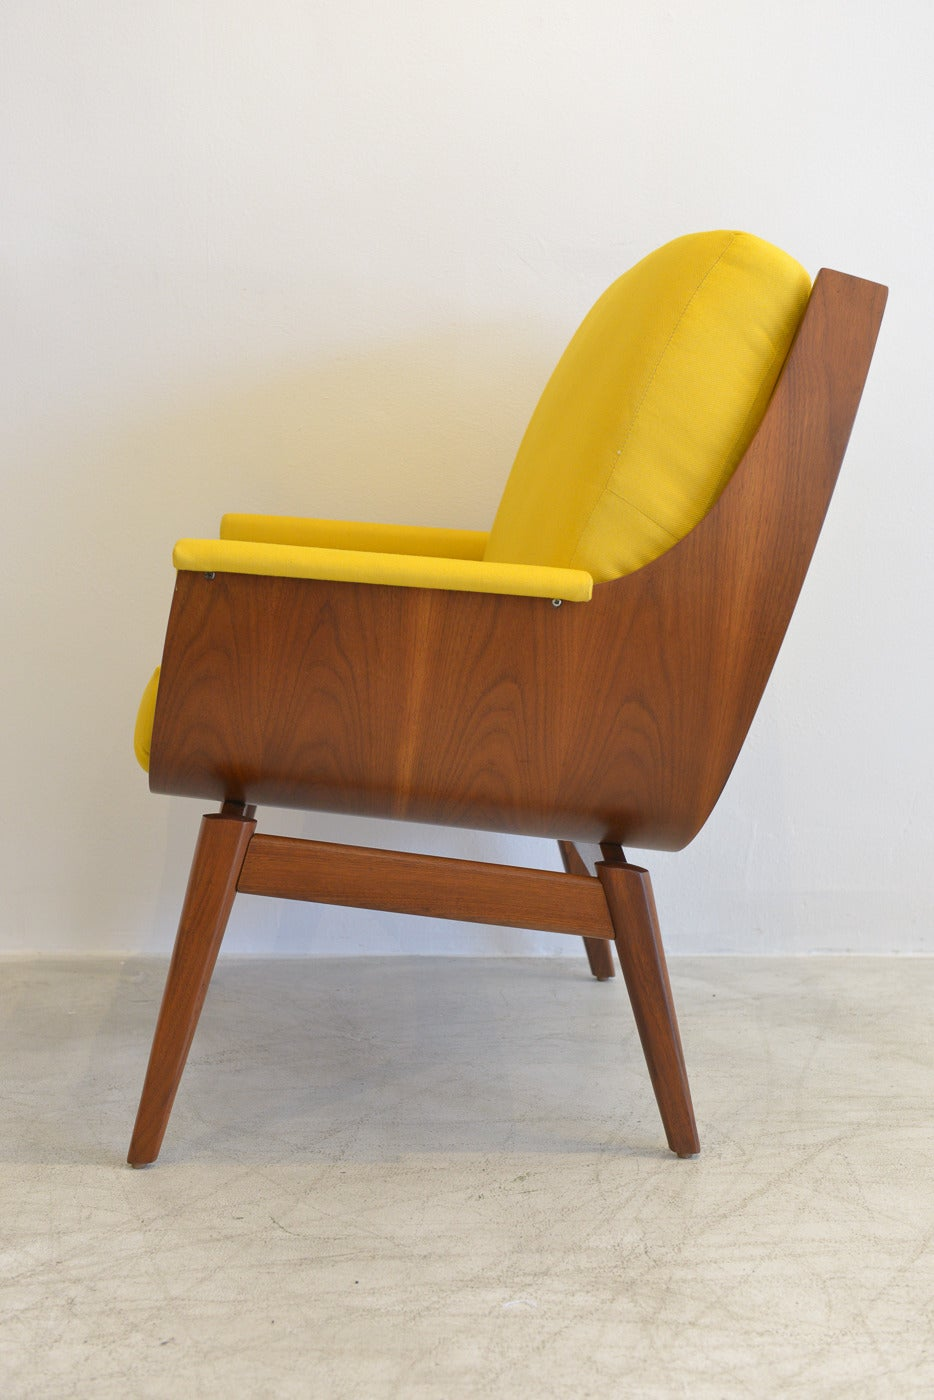 Walnut Bentwood Scoop Chair In Bright Yellow At 1stdibs